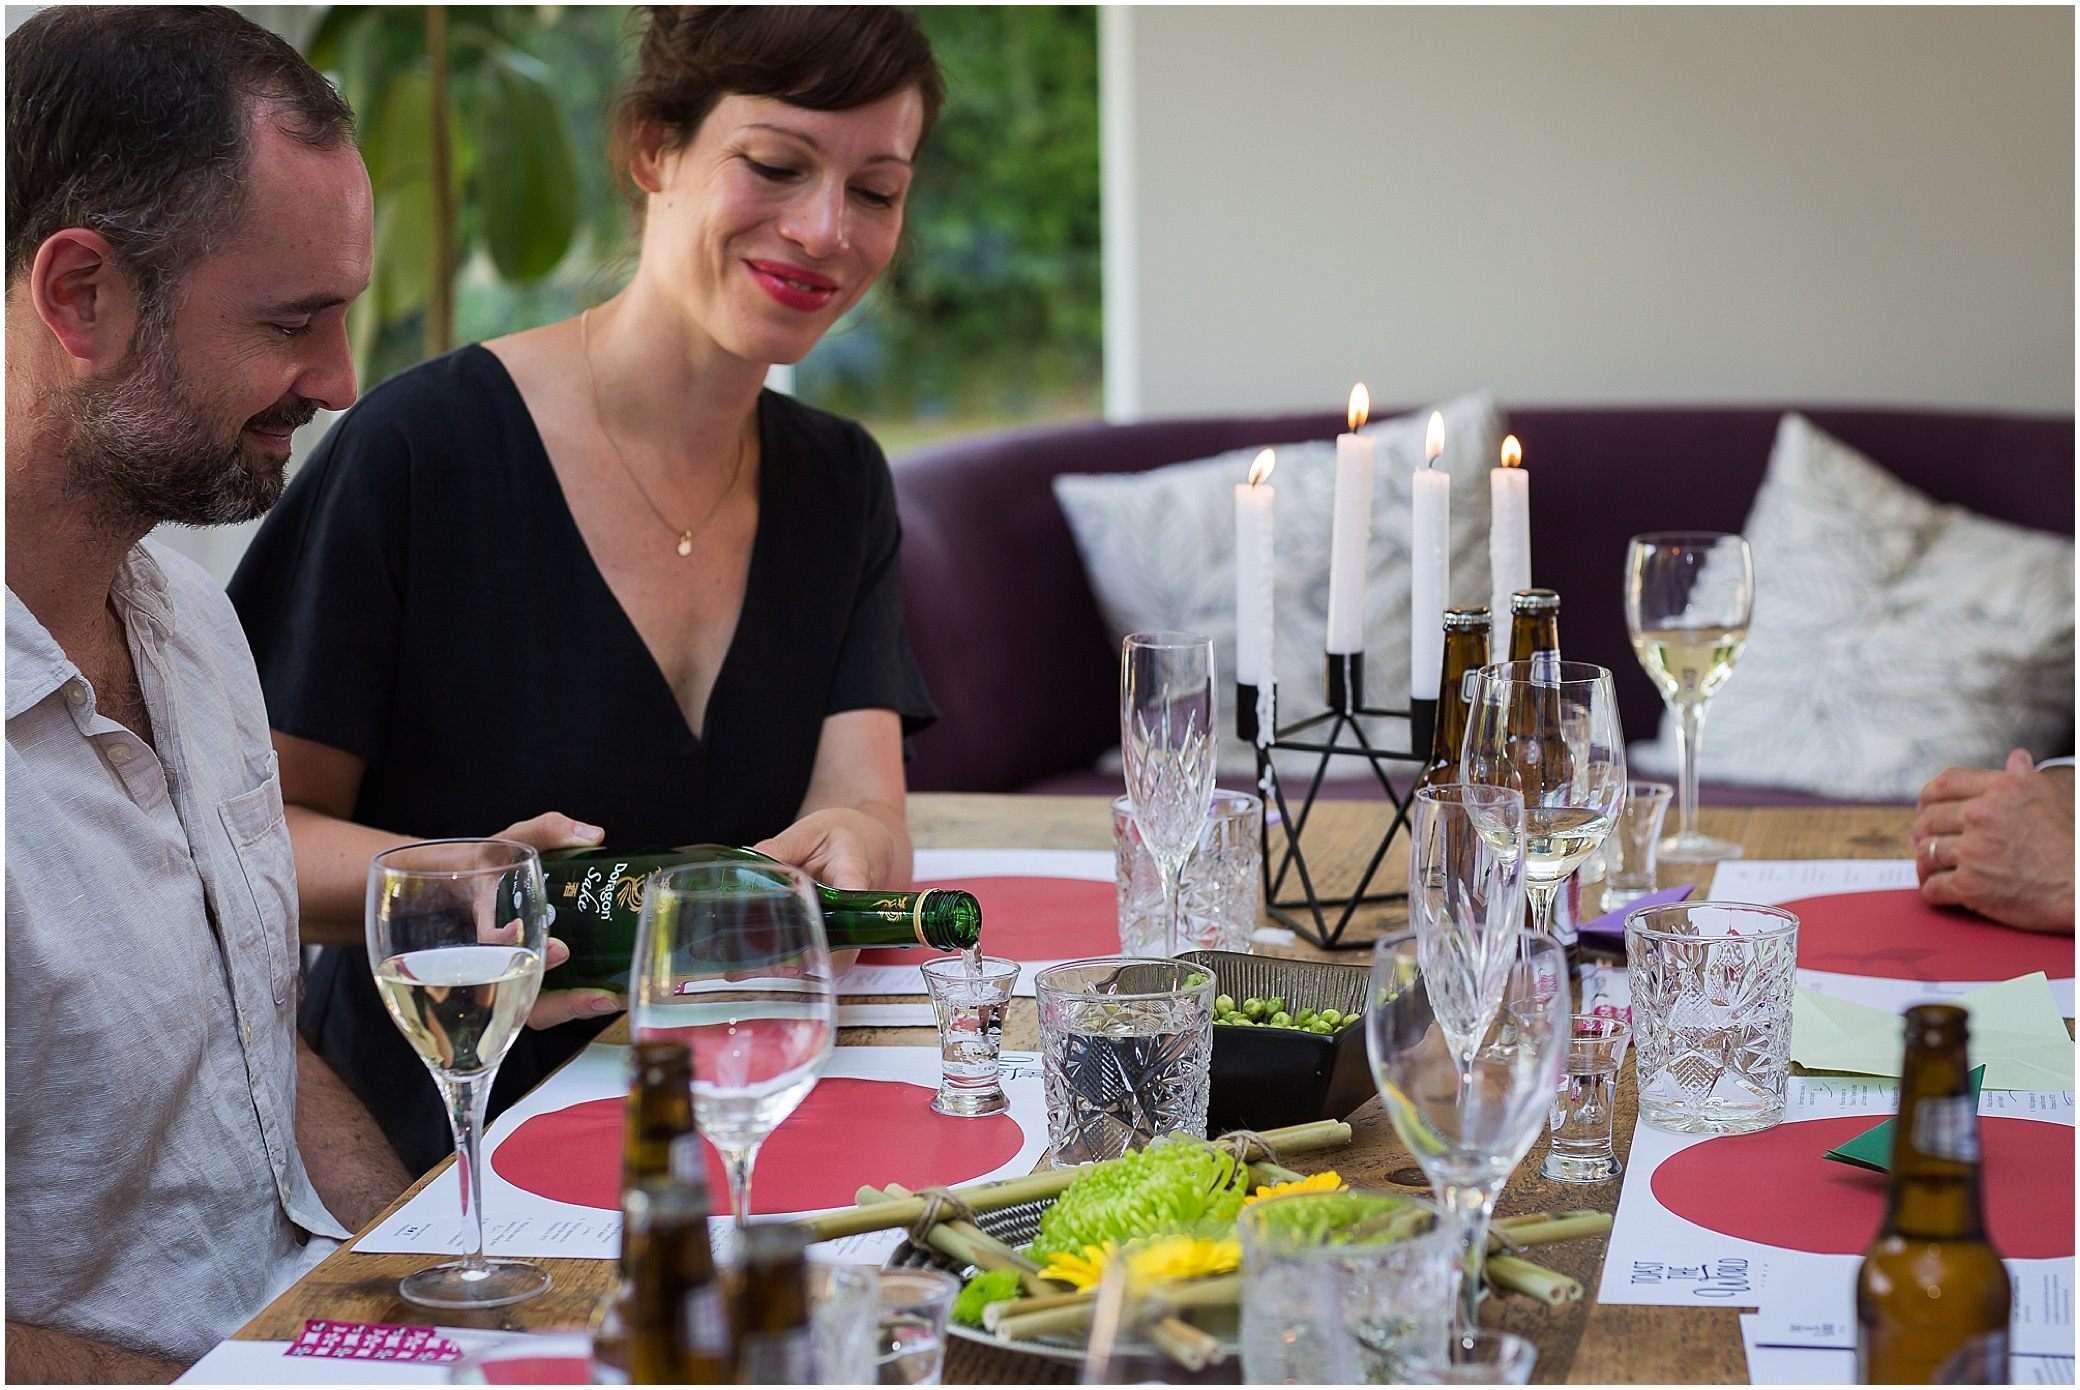 Woman pouring sake at dinner party